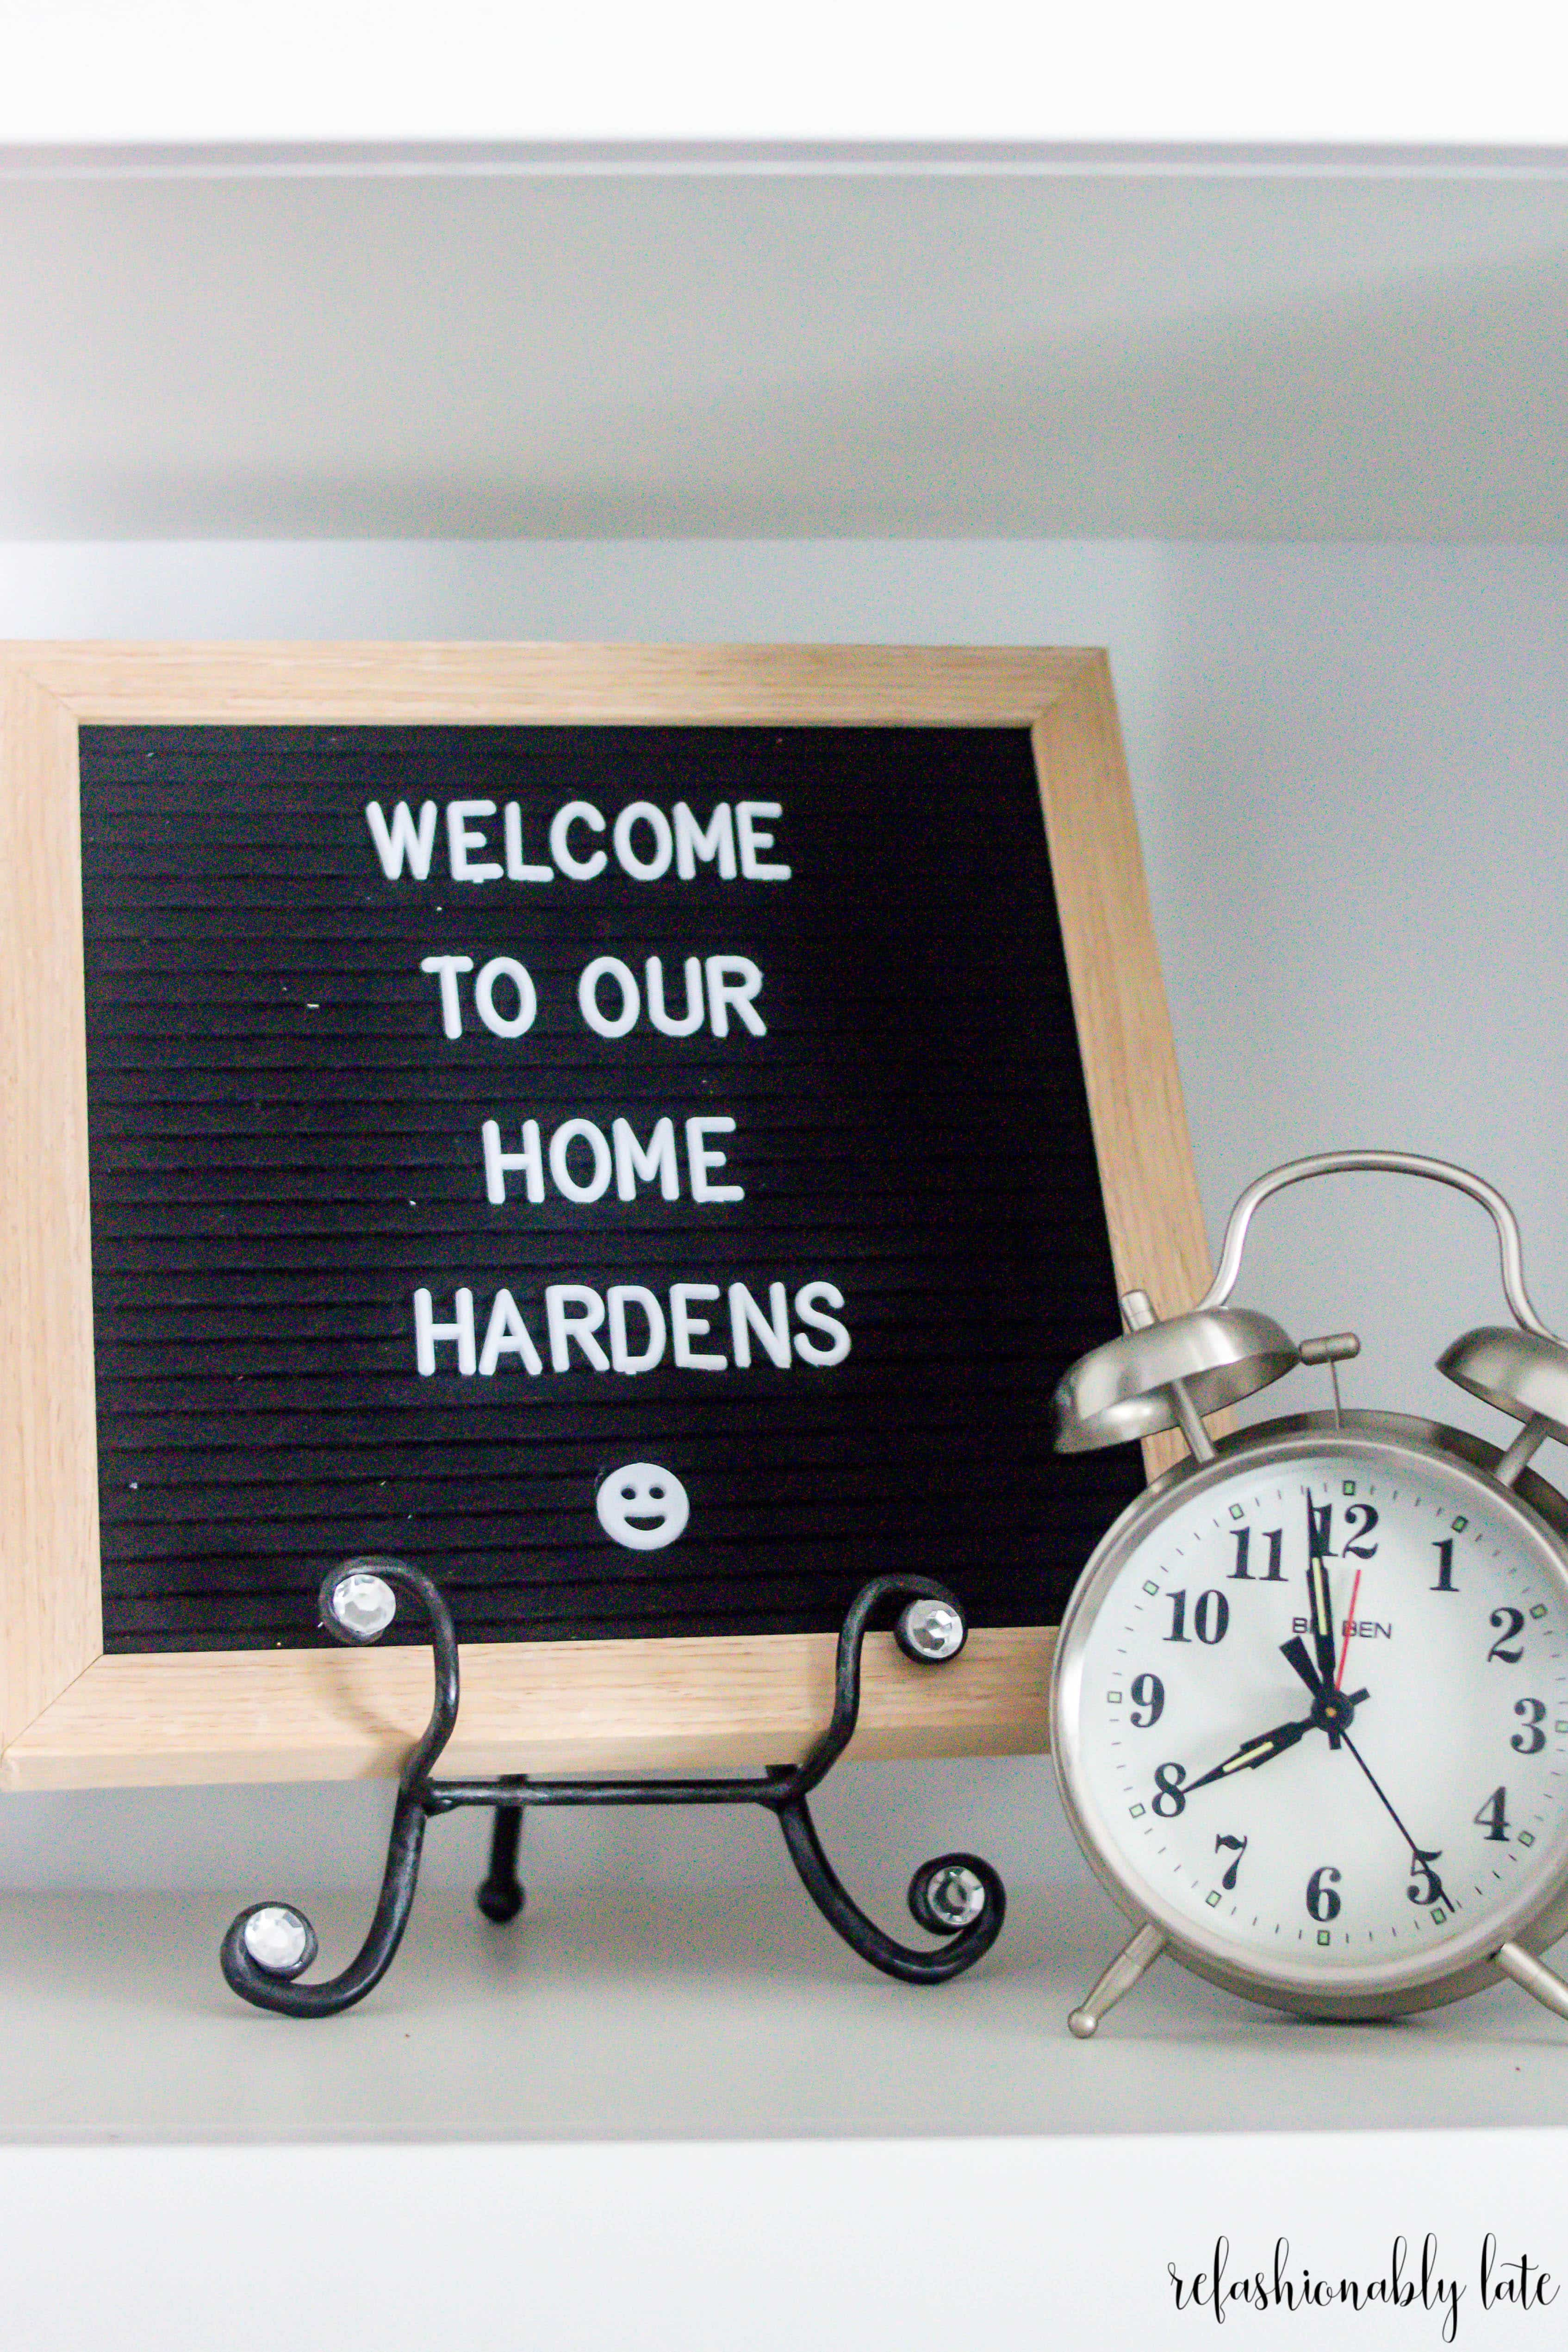 letter board reading welcome to our home hardens with an alarm clock on the side